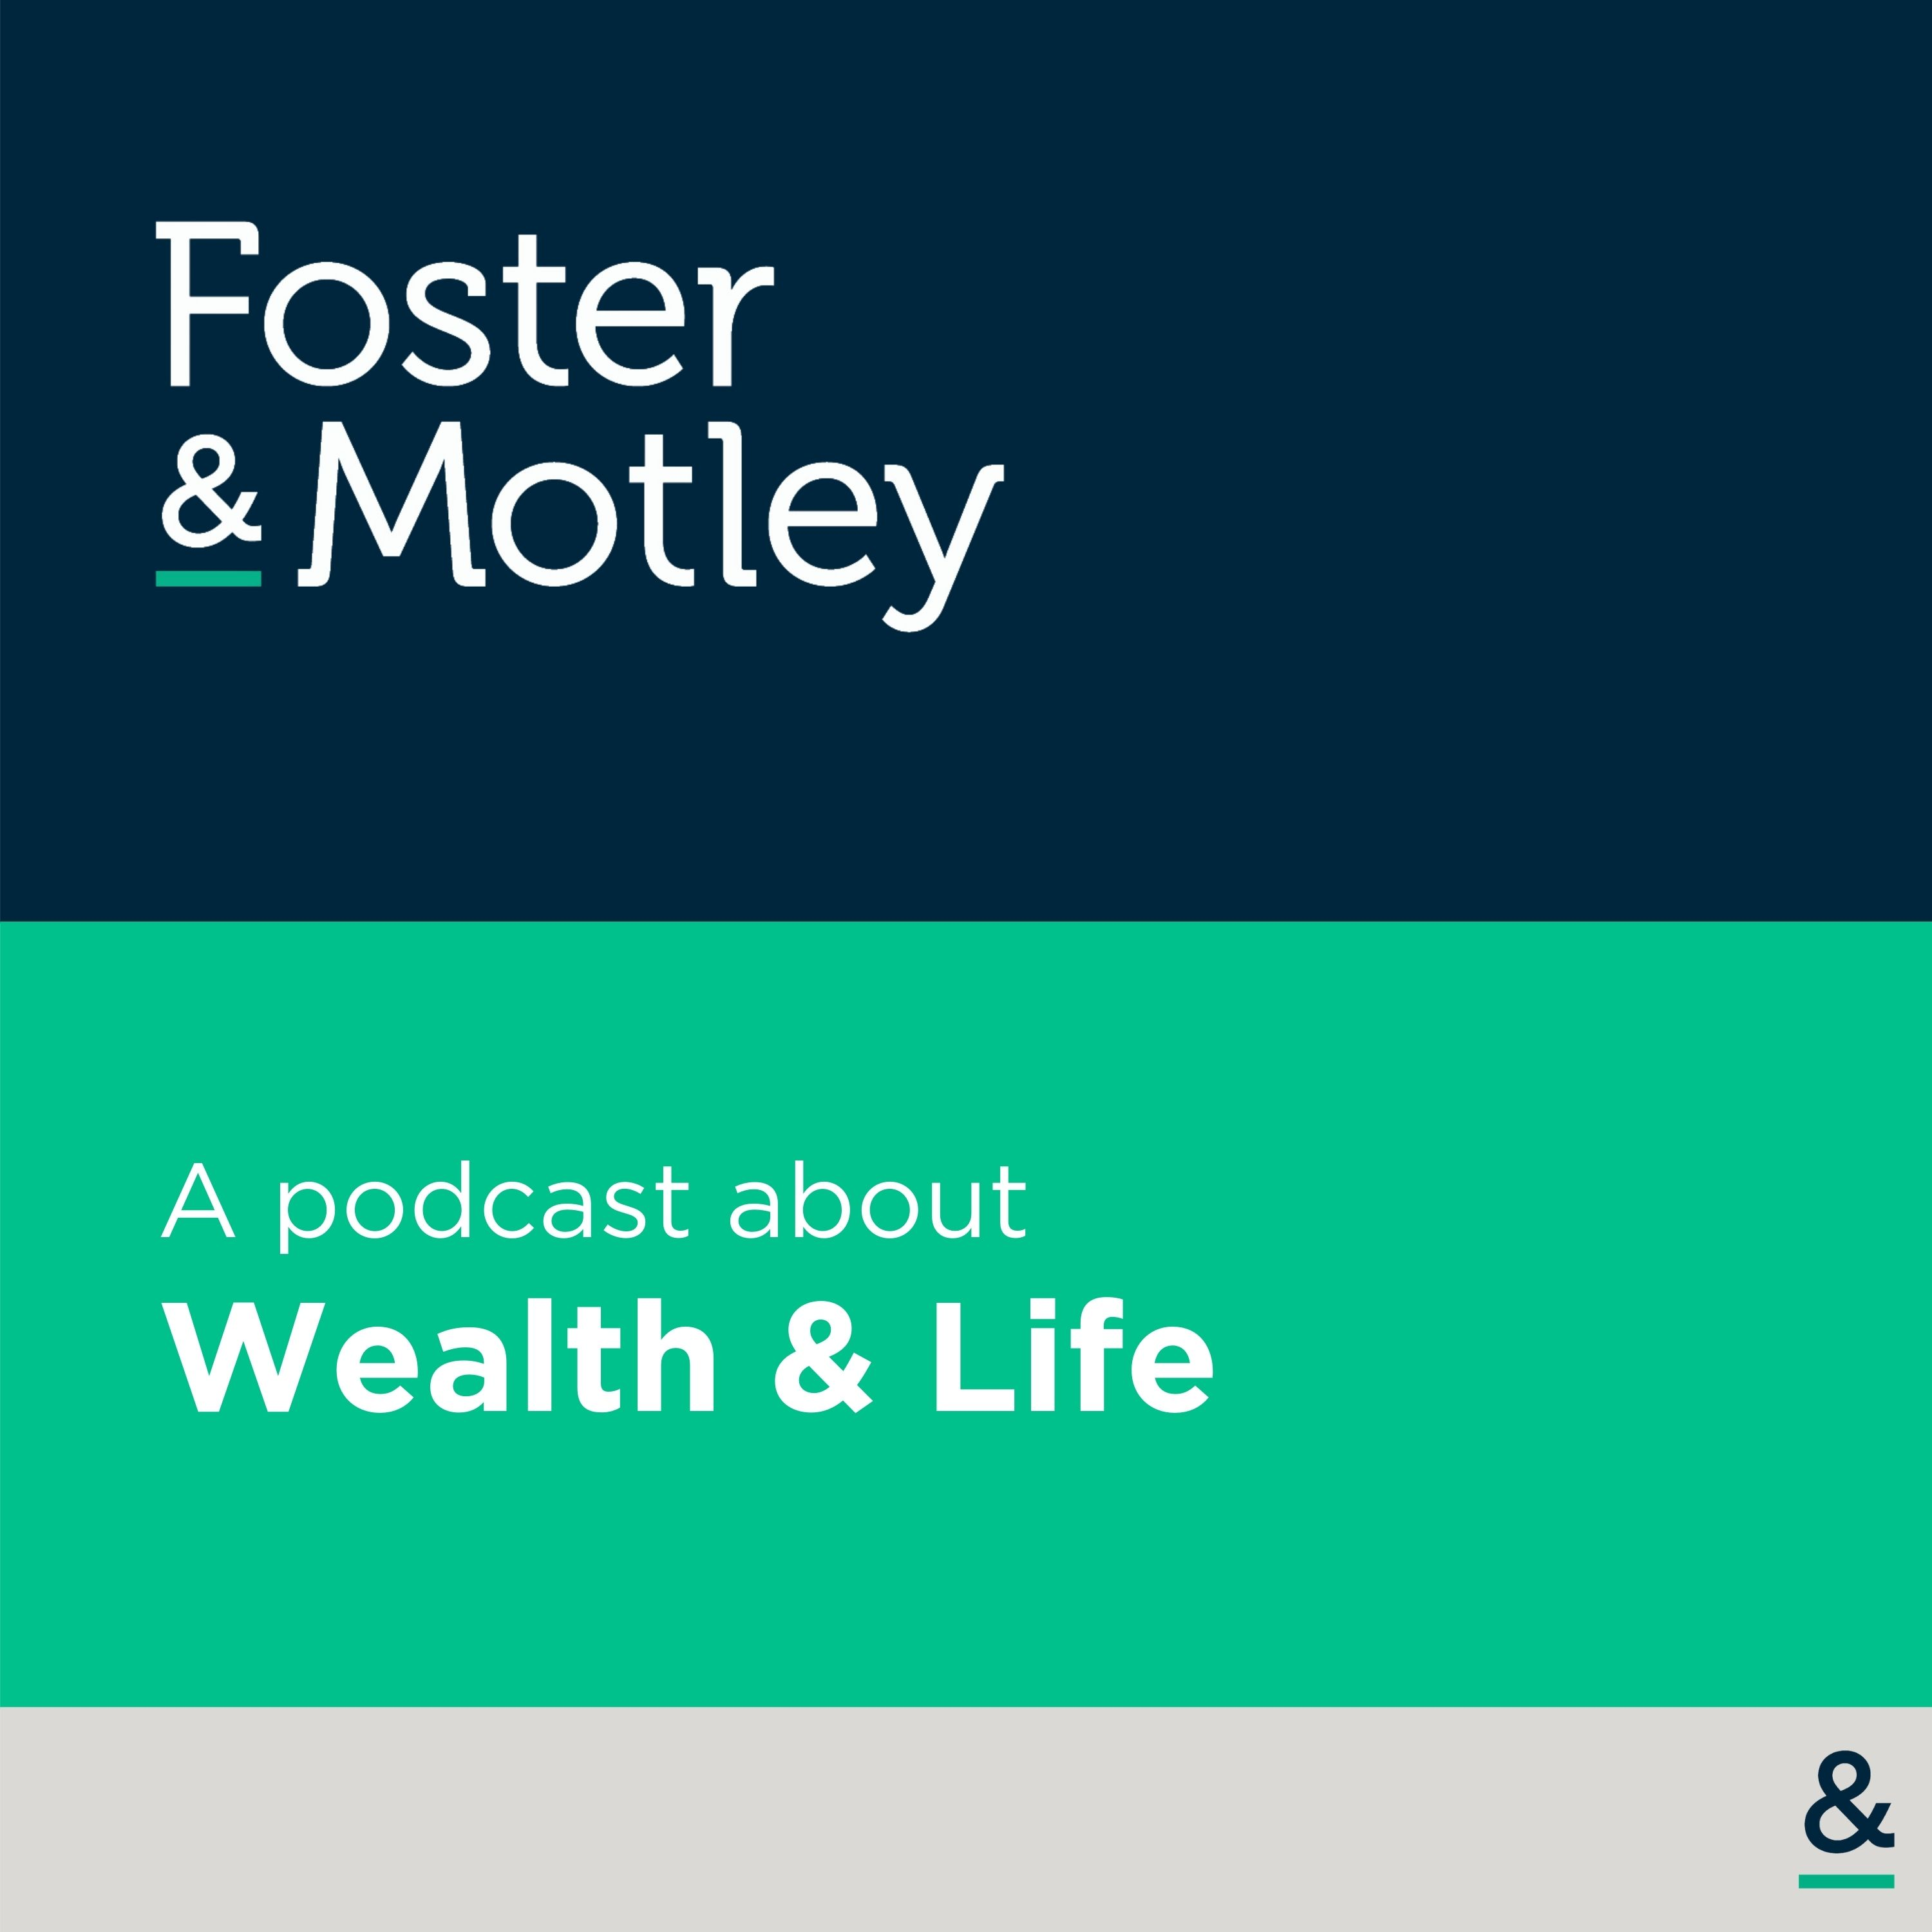 Foster & Motley : A podcast about Wealth & Life